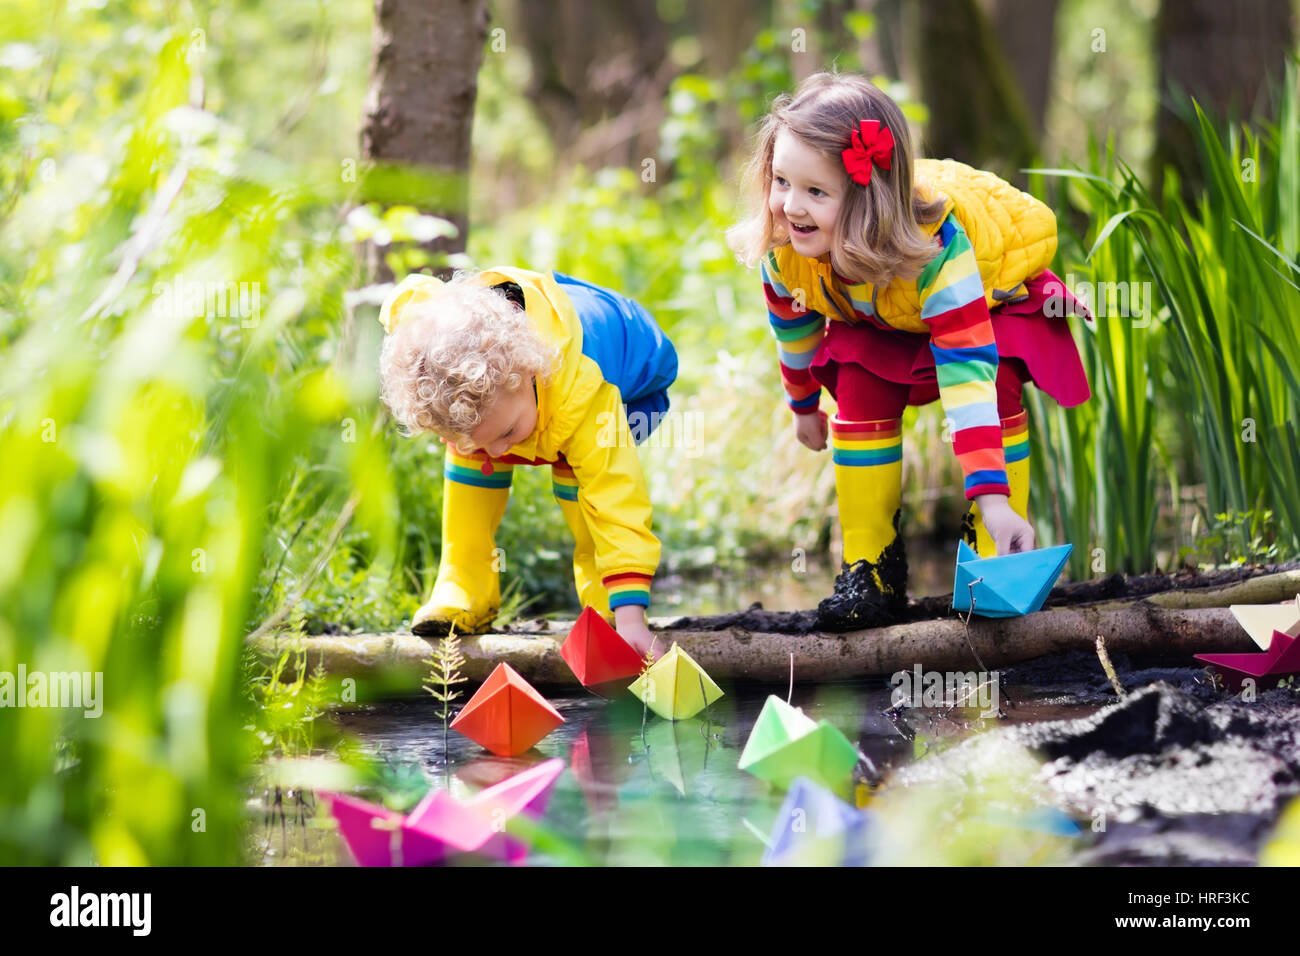 Children play with colorful paper boats in a small river on a sunny spring day. Kids playing exploring the nature. - Stock Image